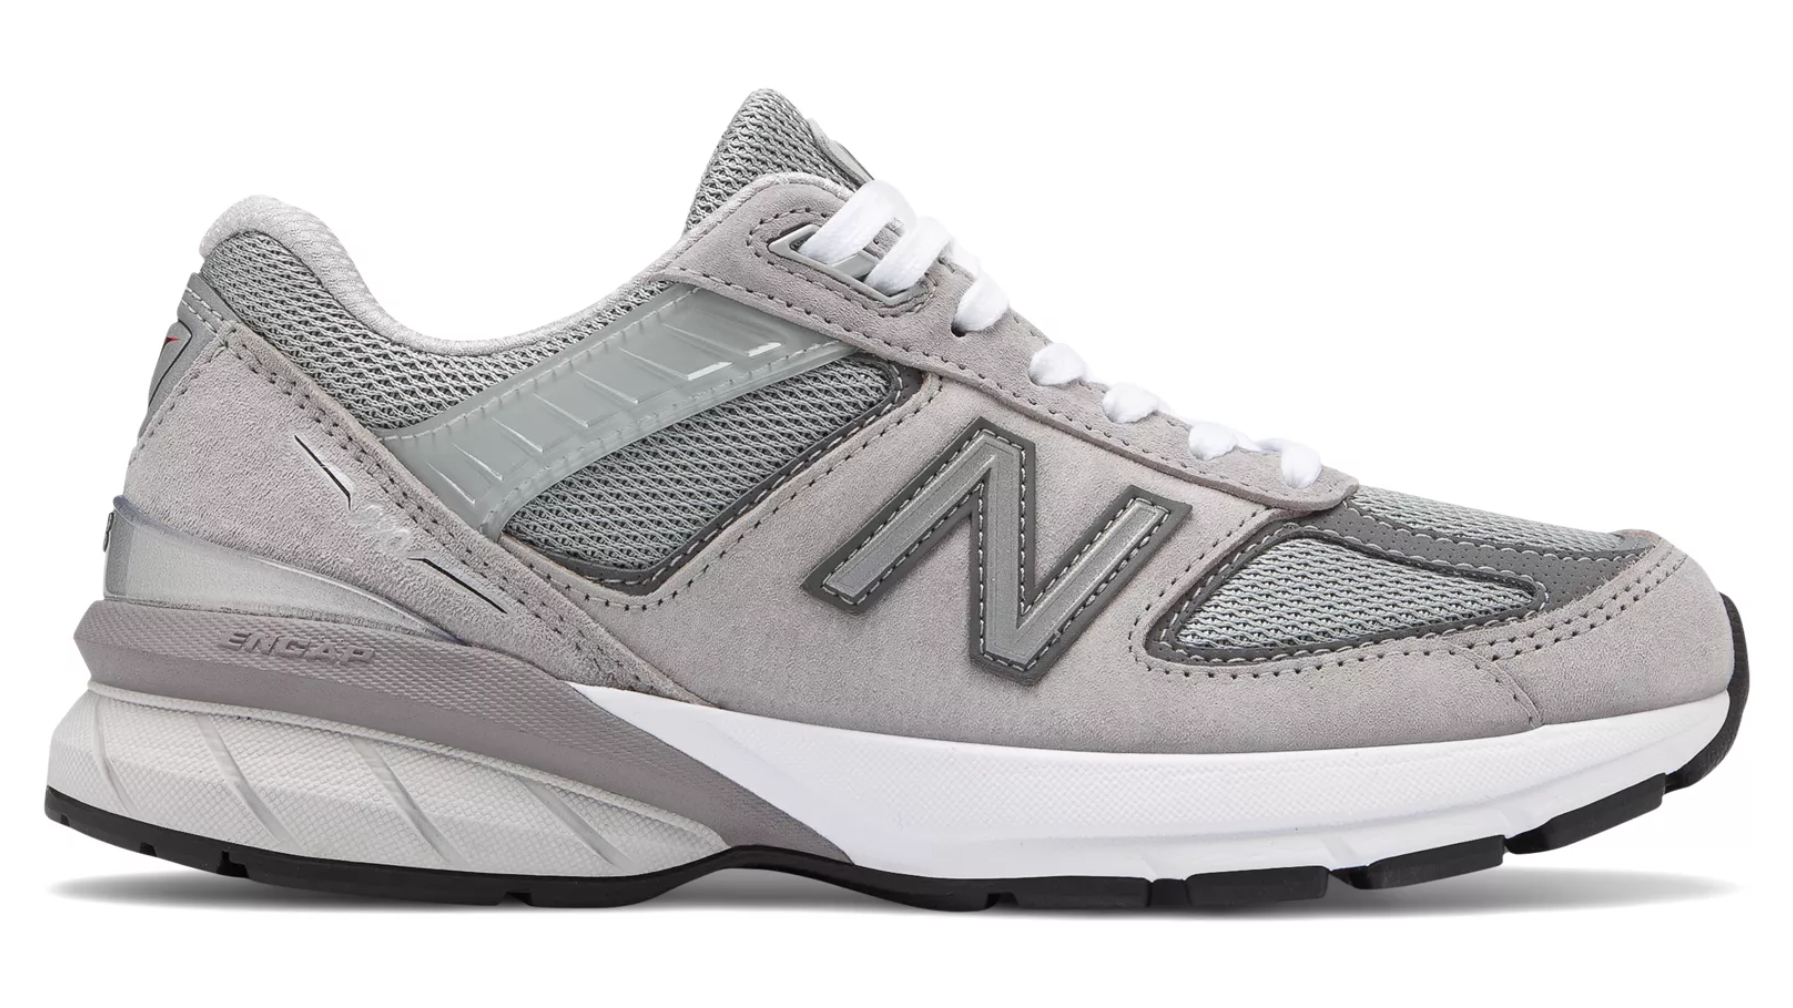 75687c59170 Best New Balance Running Shoes | New Balance Shoe Reviews 2019